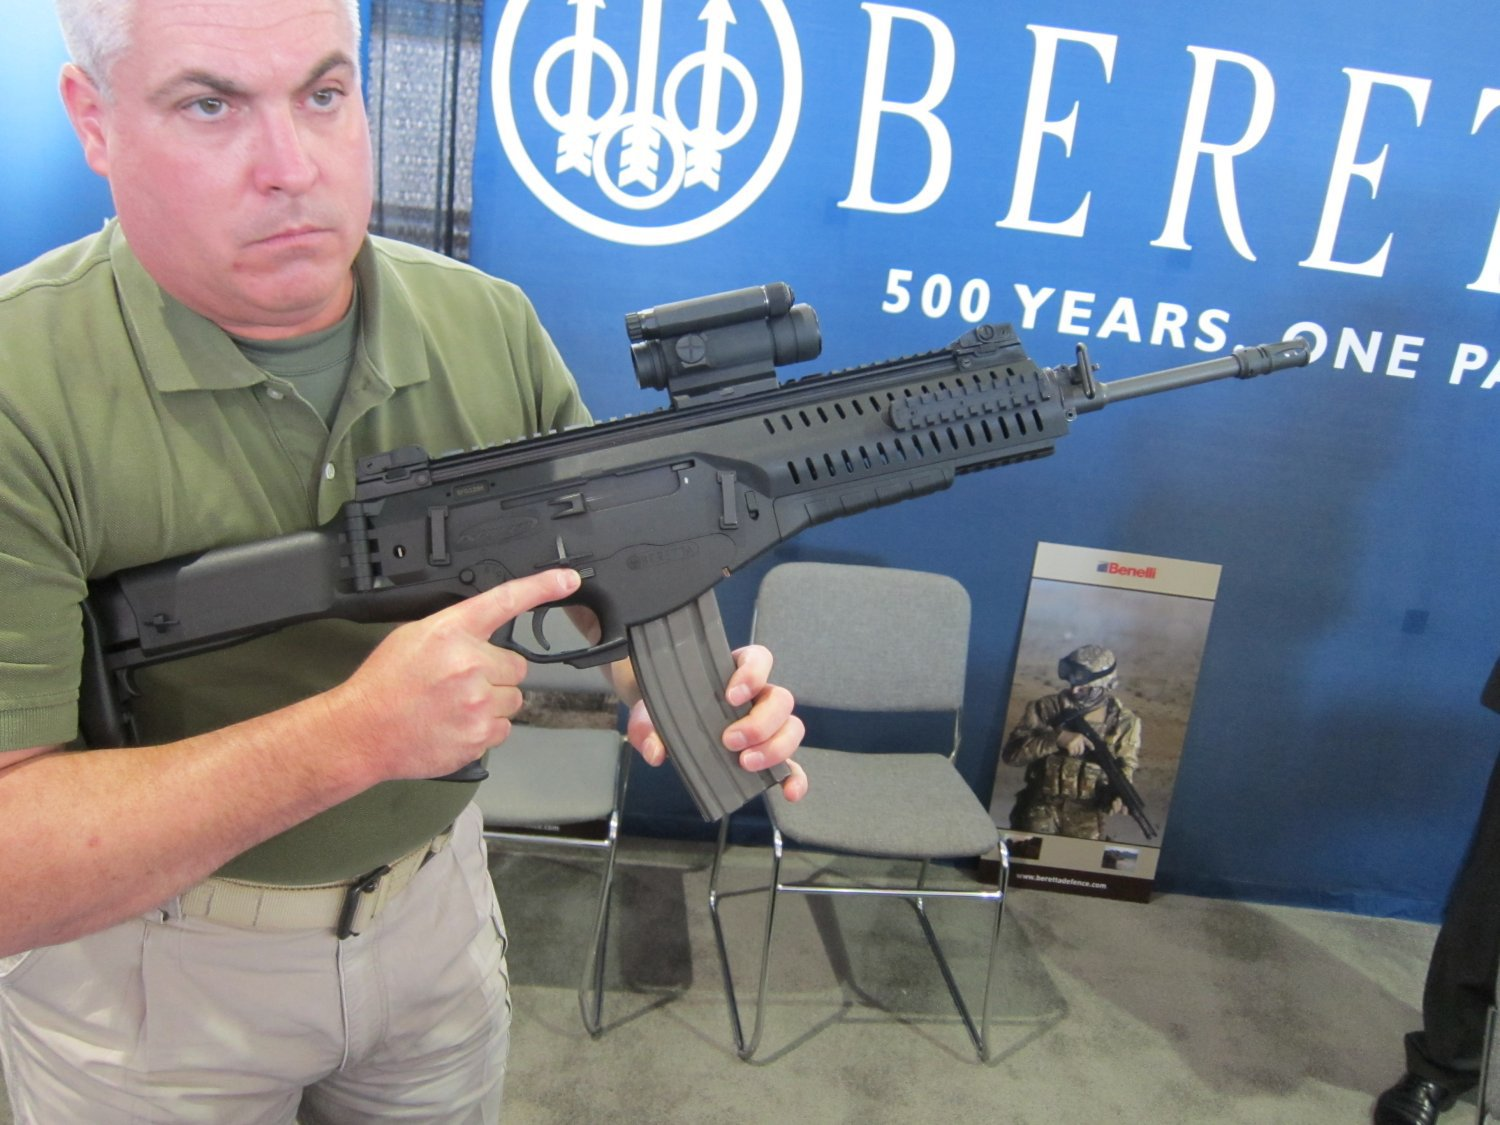 Beretta ARX-160 (also written ARX160) Modular Assault Rifle/Carbine/SBR Demo Video and Interview Transcript from SOFIC 2011: Military Special Operations Forces (SOF), Law Enforcement Officers (LEO's), and Civilian Tactical Shooters Get Tactical Rifle/Carbine with Ambi (Ambidextrous) Controls, Side-Switchable Charging Handle, and Quick-Change Barrel (QCB) System!